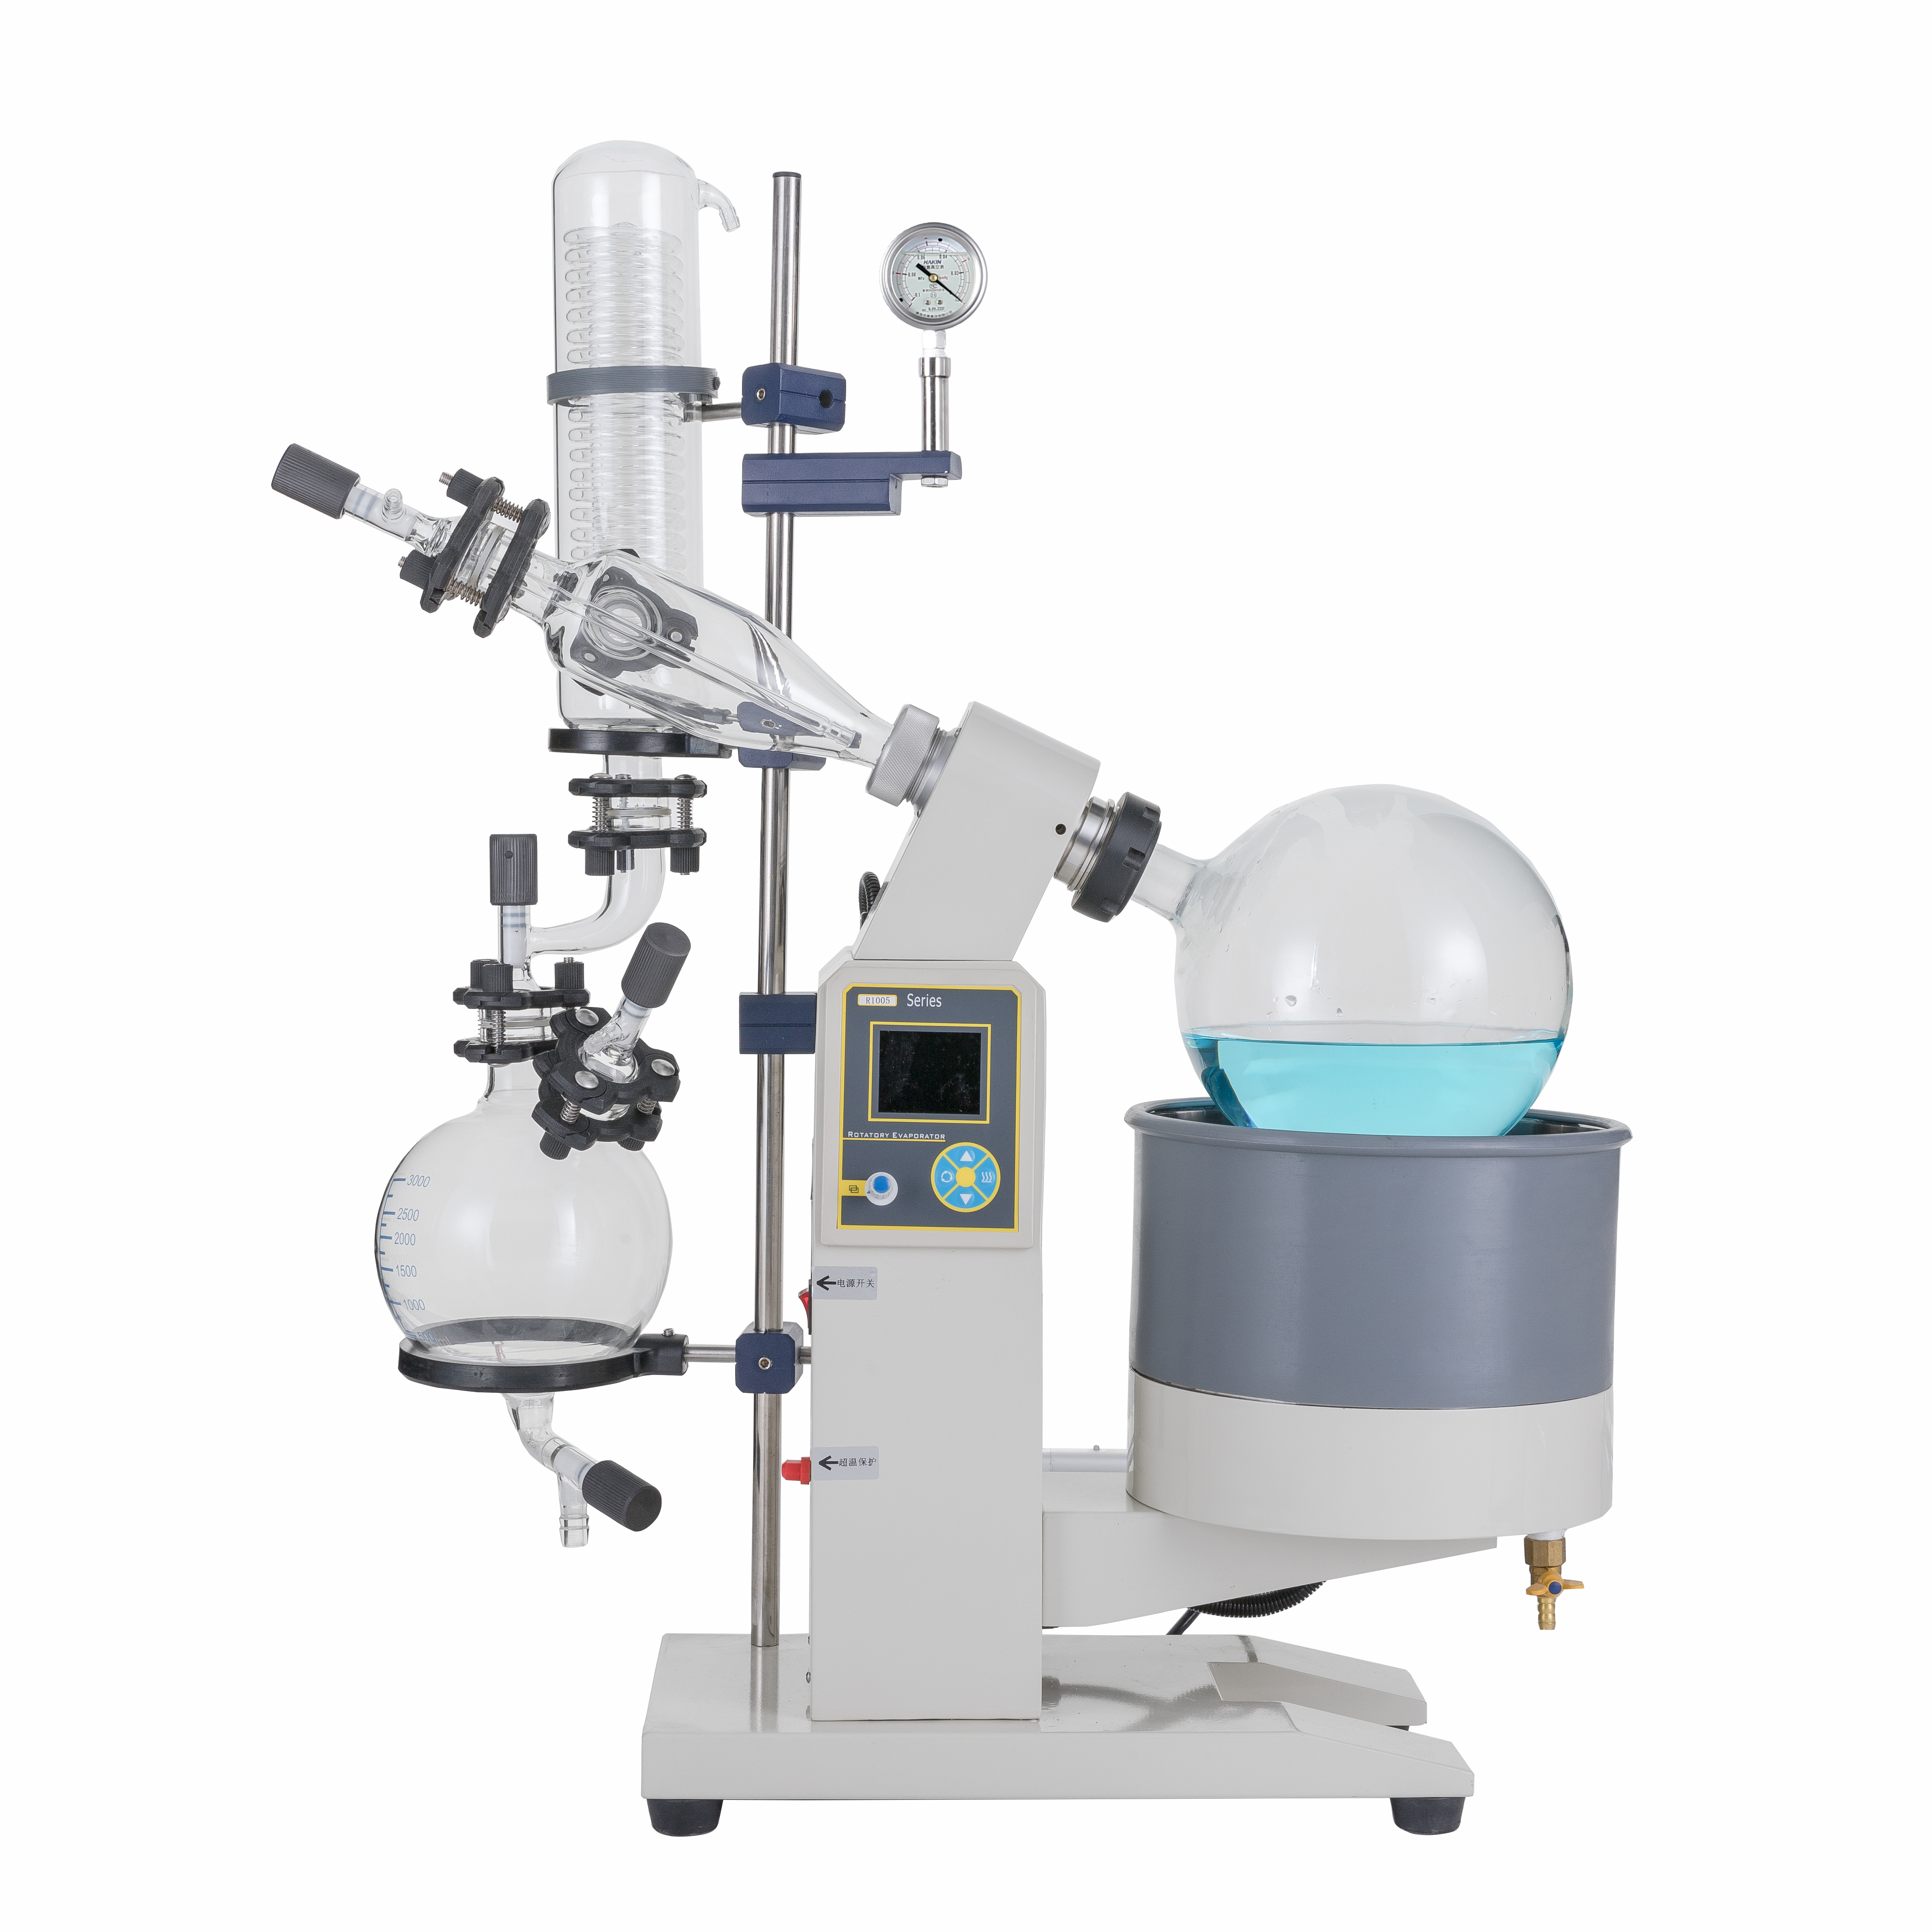 Pilot Scale Vacuum Distillation Essential Oil Distiller Cannabis Oil Extract 5L 10L 20L 50L Rotary Evaporator Hot Recommended